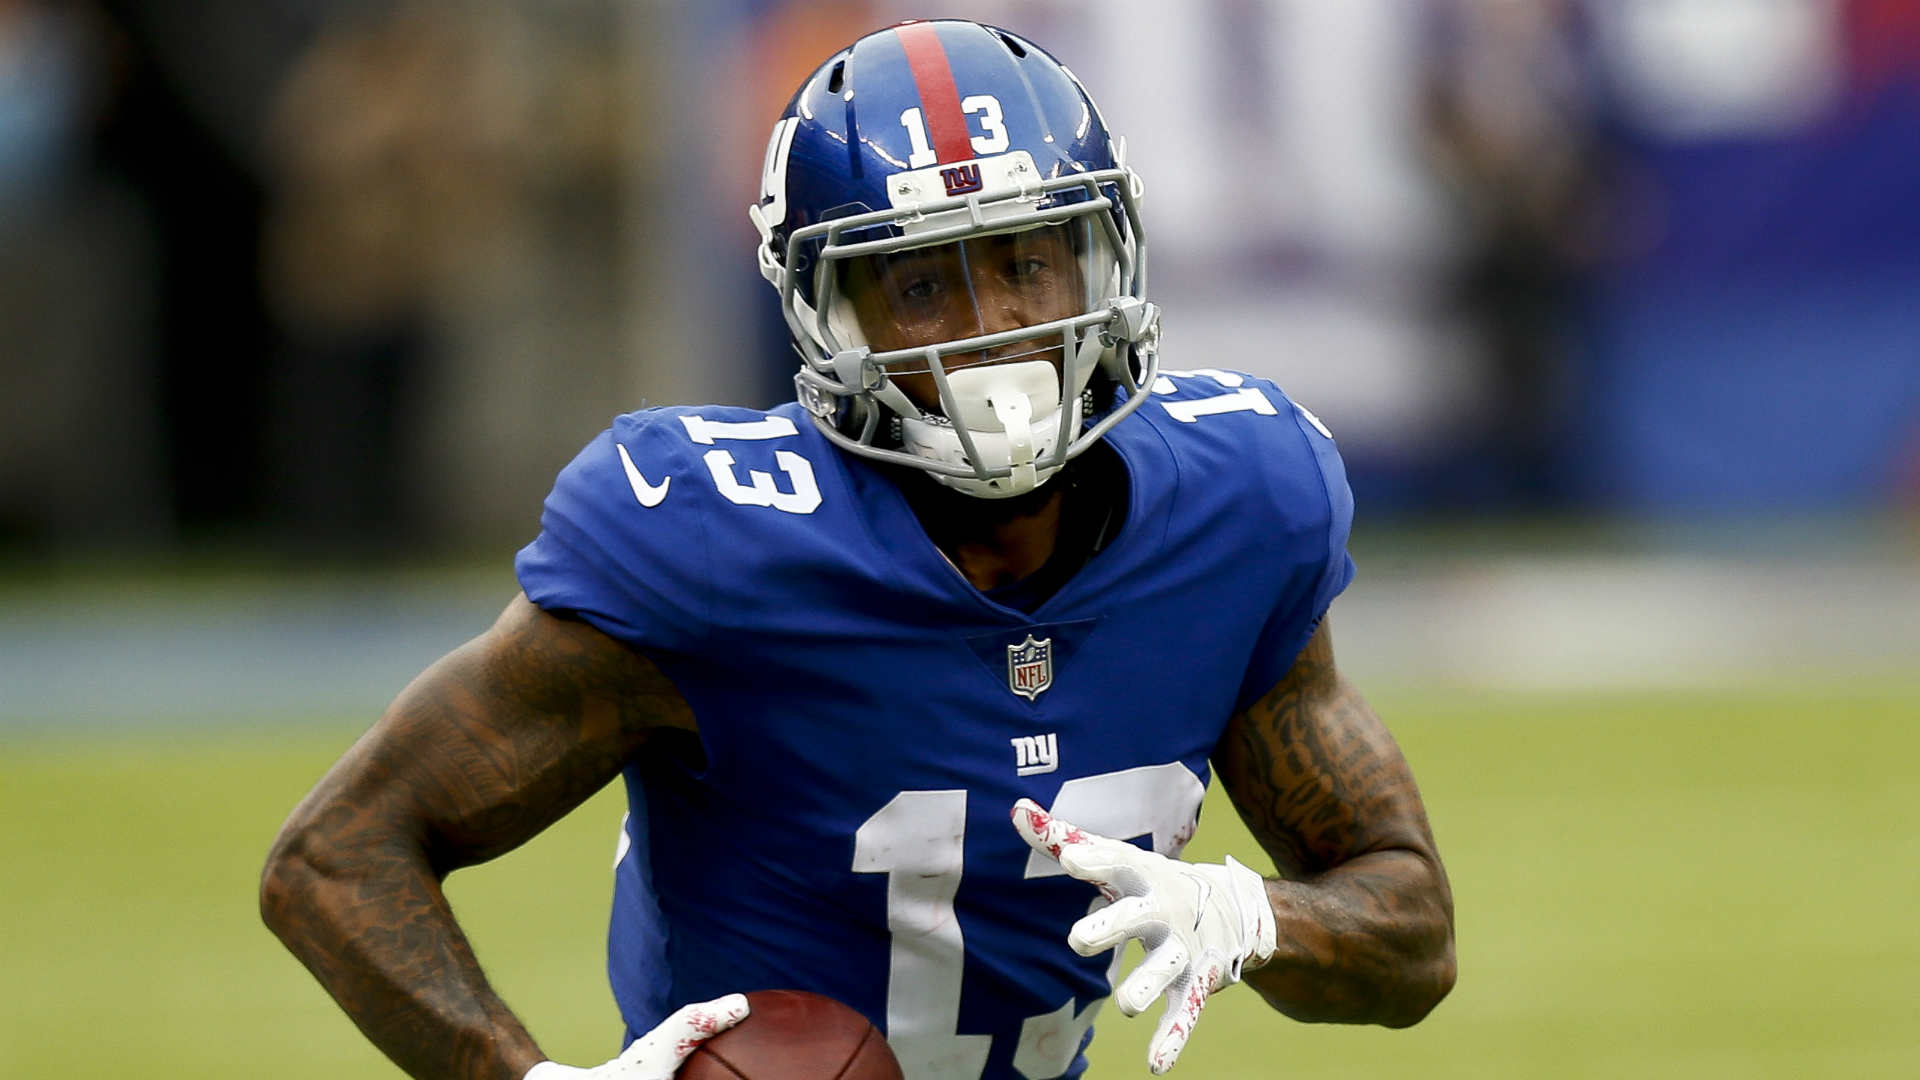 Giants ready to begin contract negotiations with Odell Beckham Jr., says John Mara